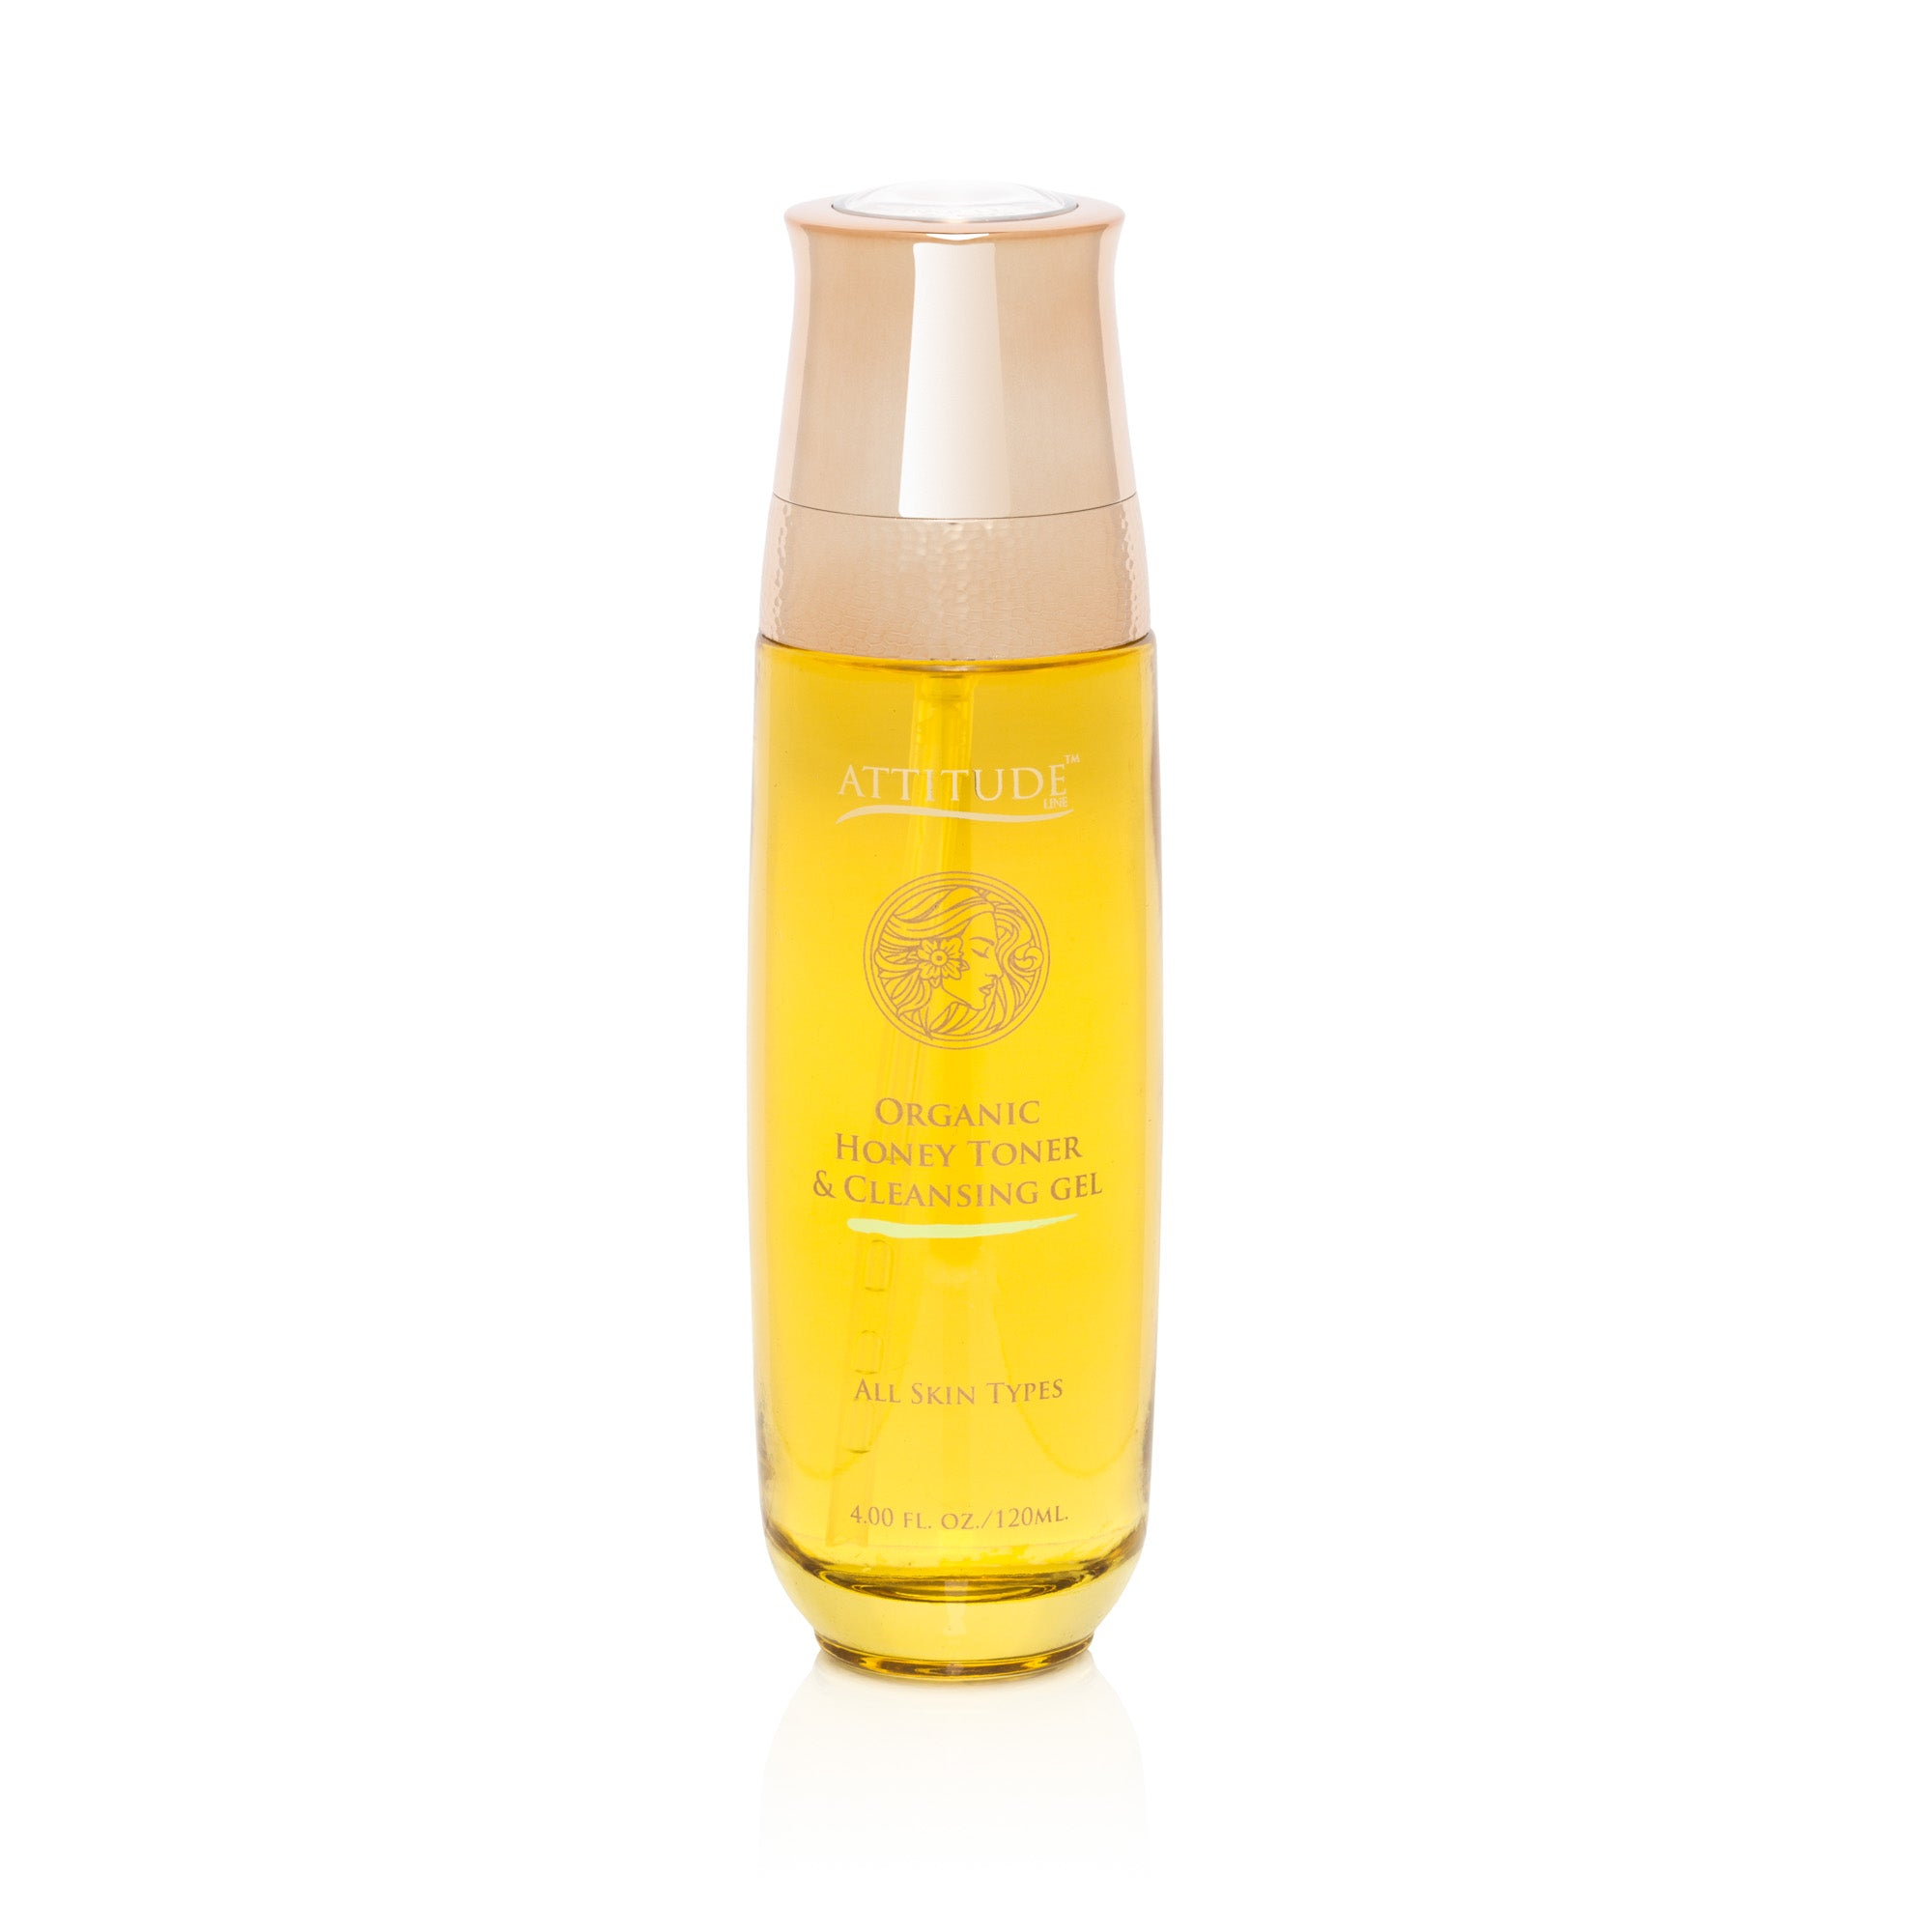 ATTITUDE - Organic Honey Toner & Cleansing Gel